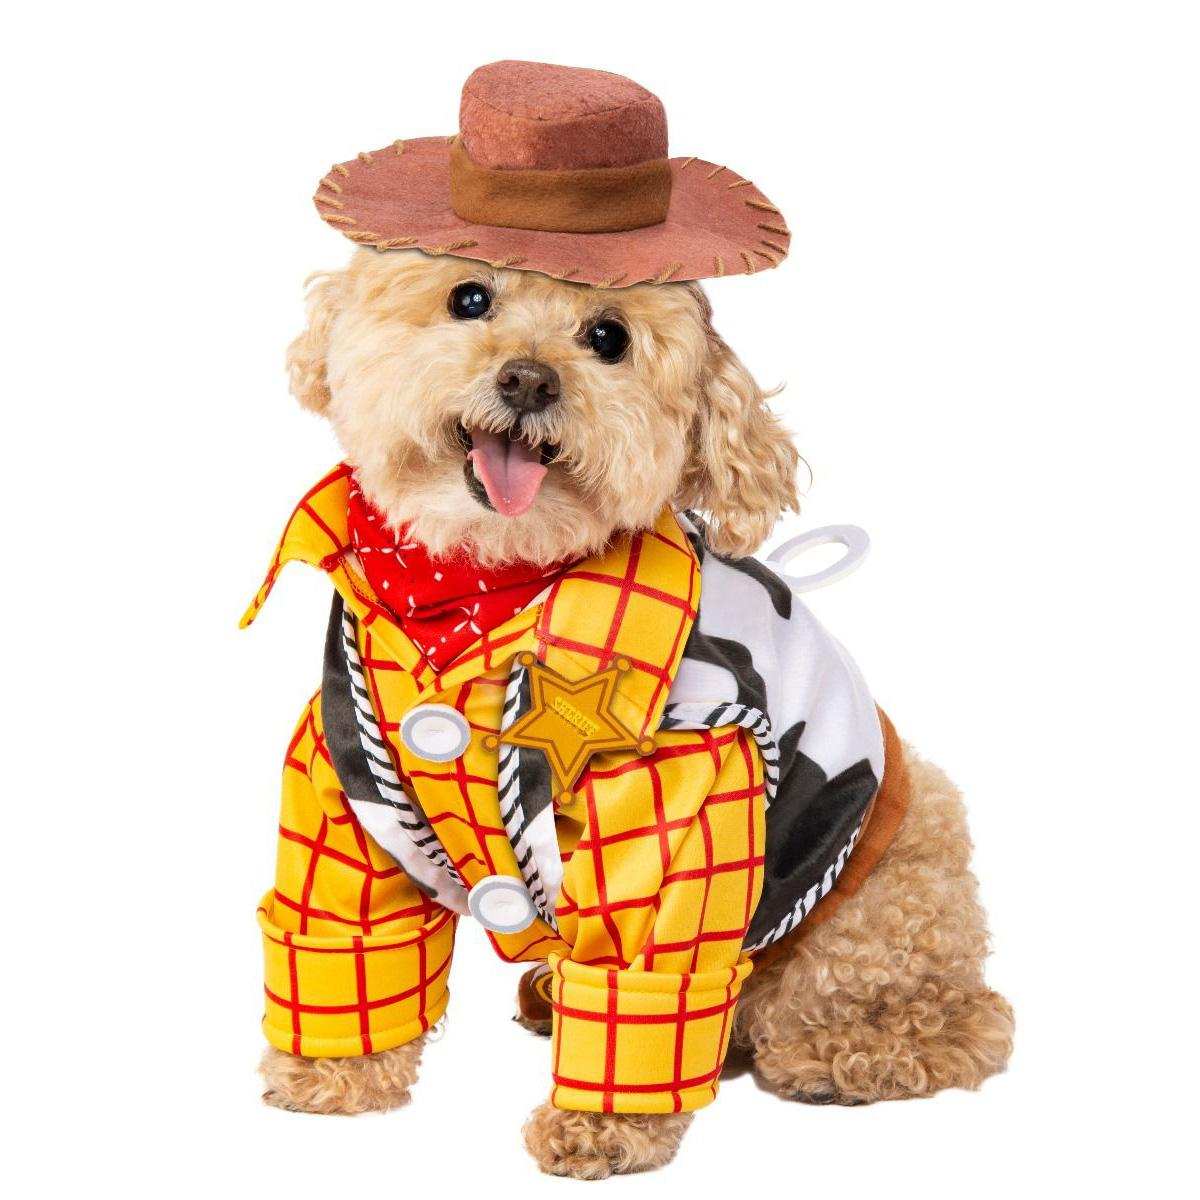 Toy Story Woody Dog Costume by Rubies